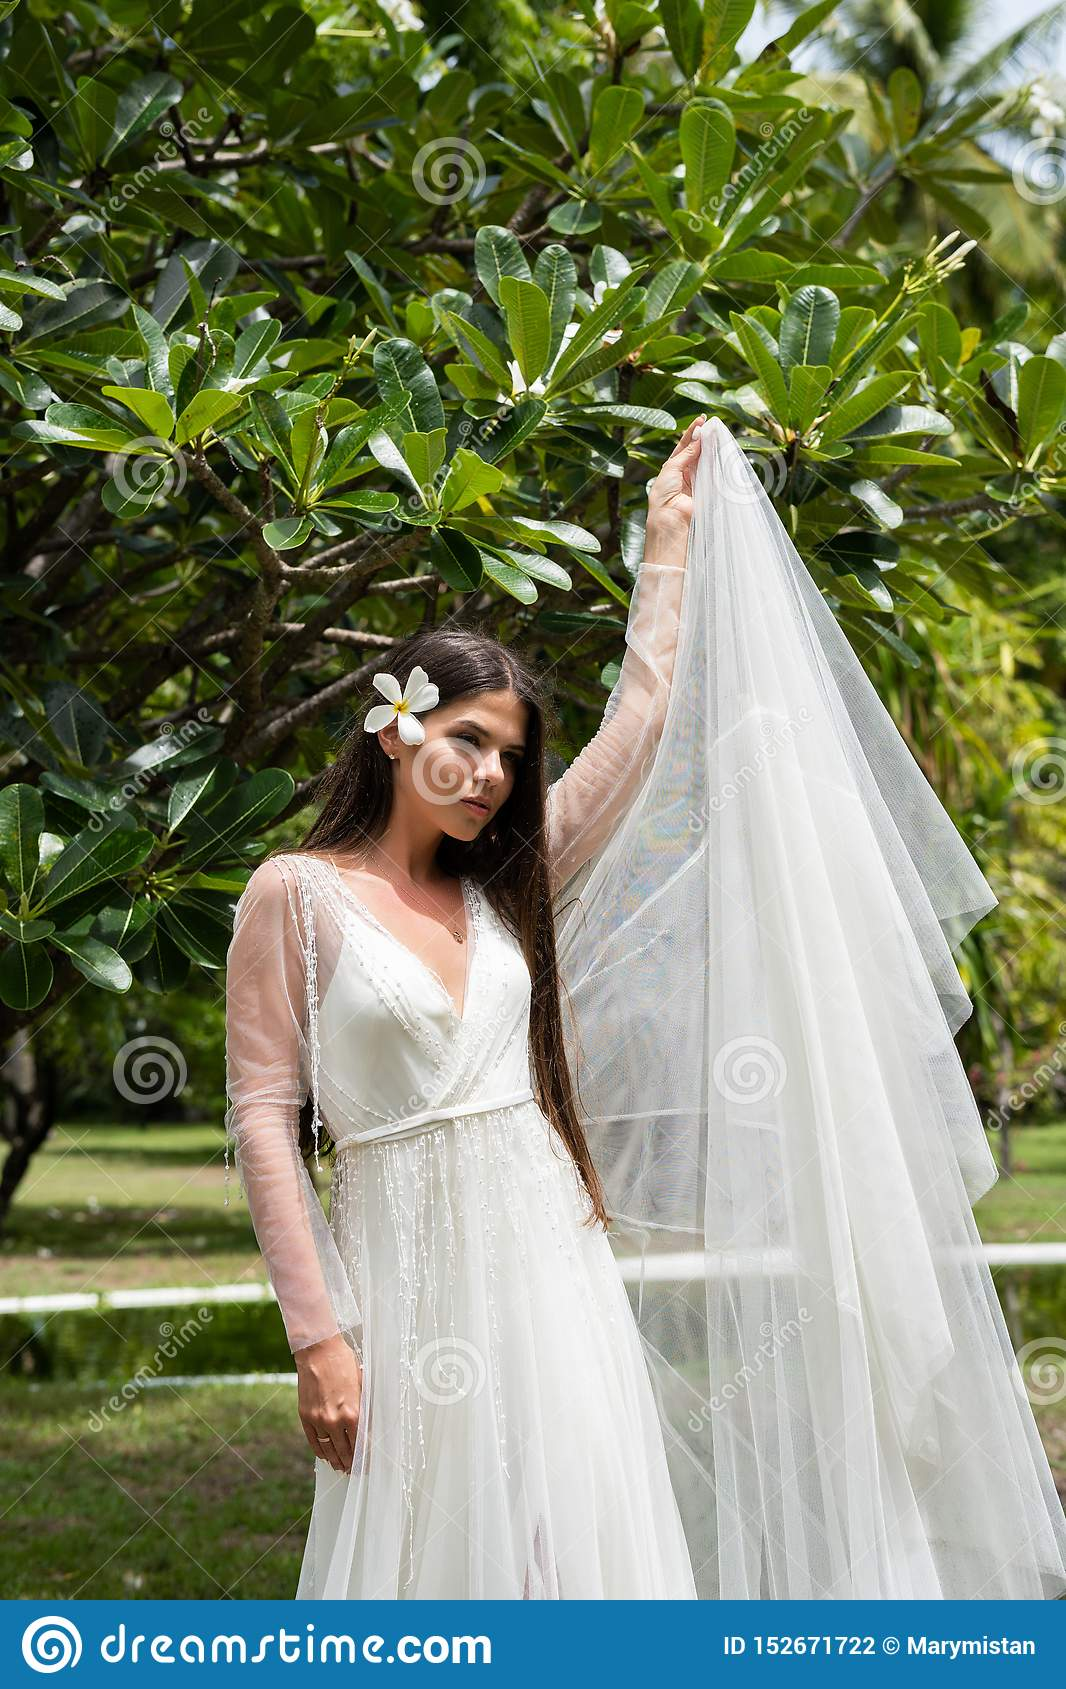 A bride in a white dress with an exotic flower in her hair is standing under a flowering tropical tree